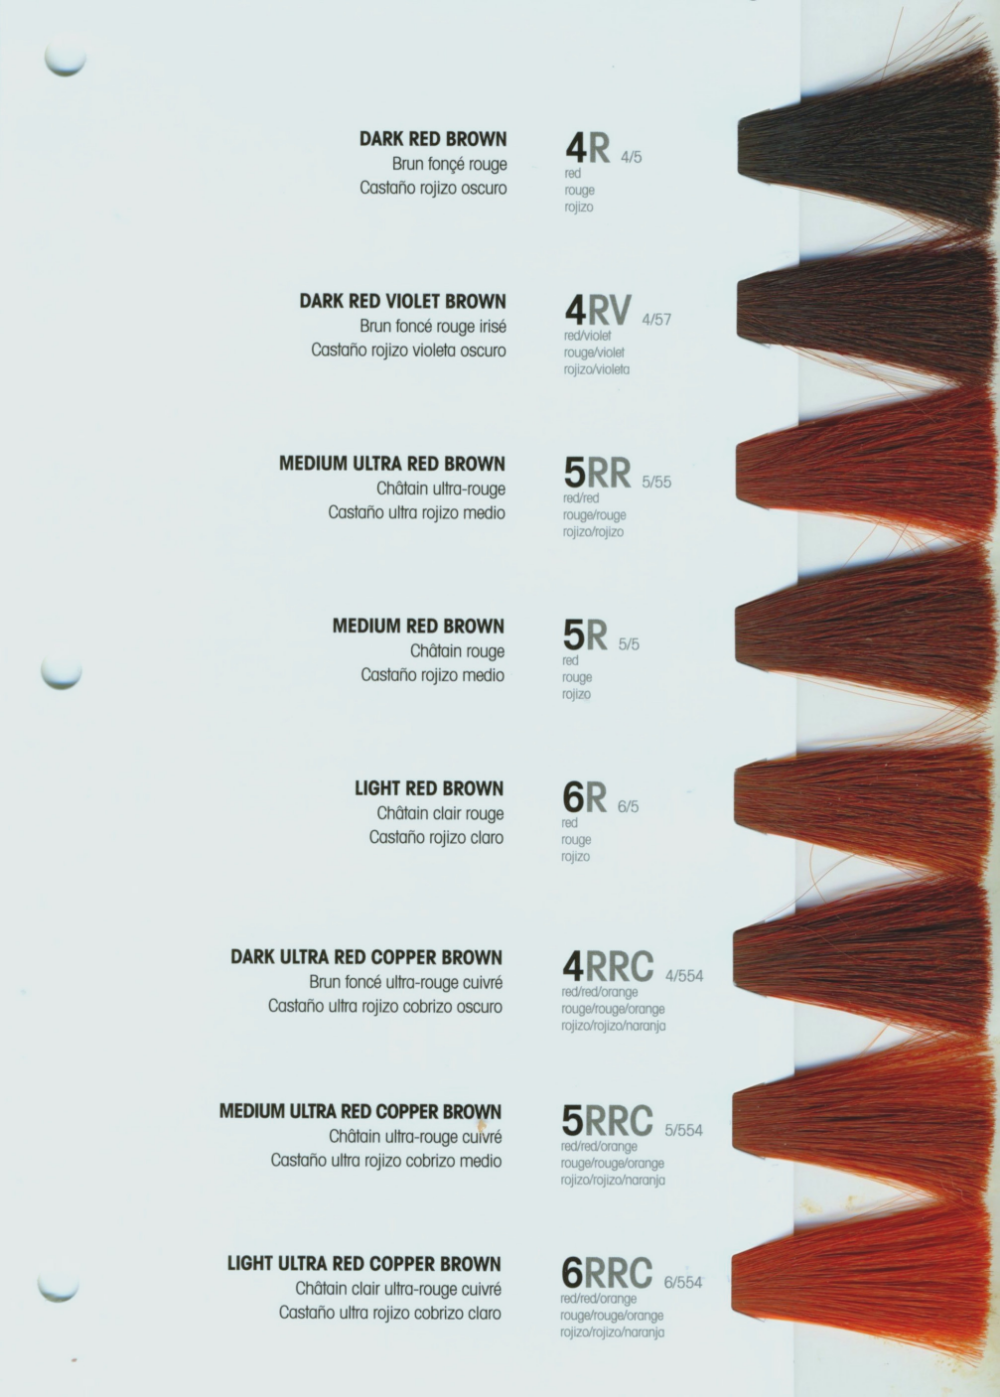 New Lanza Color Swatch Chart Album On Imgur Hair And Thare Lanzahaircolor In 2020 Hair Color Chart Ion Hair Colors Ion Hair Color Chart